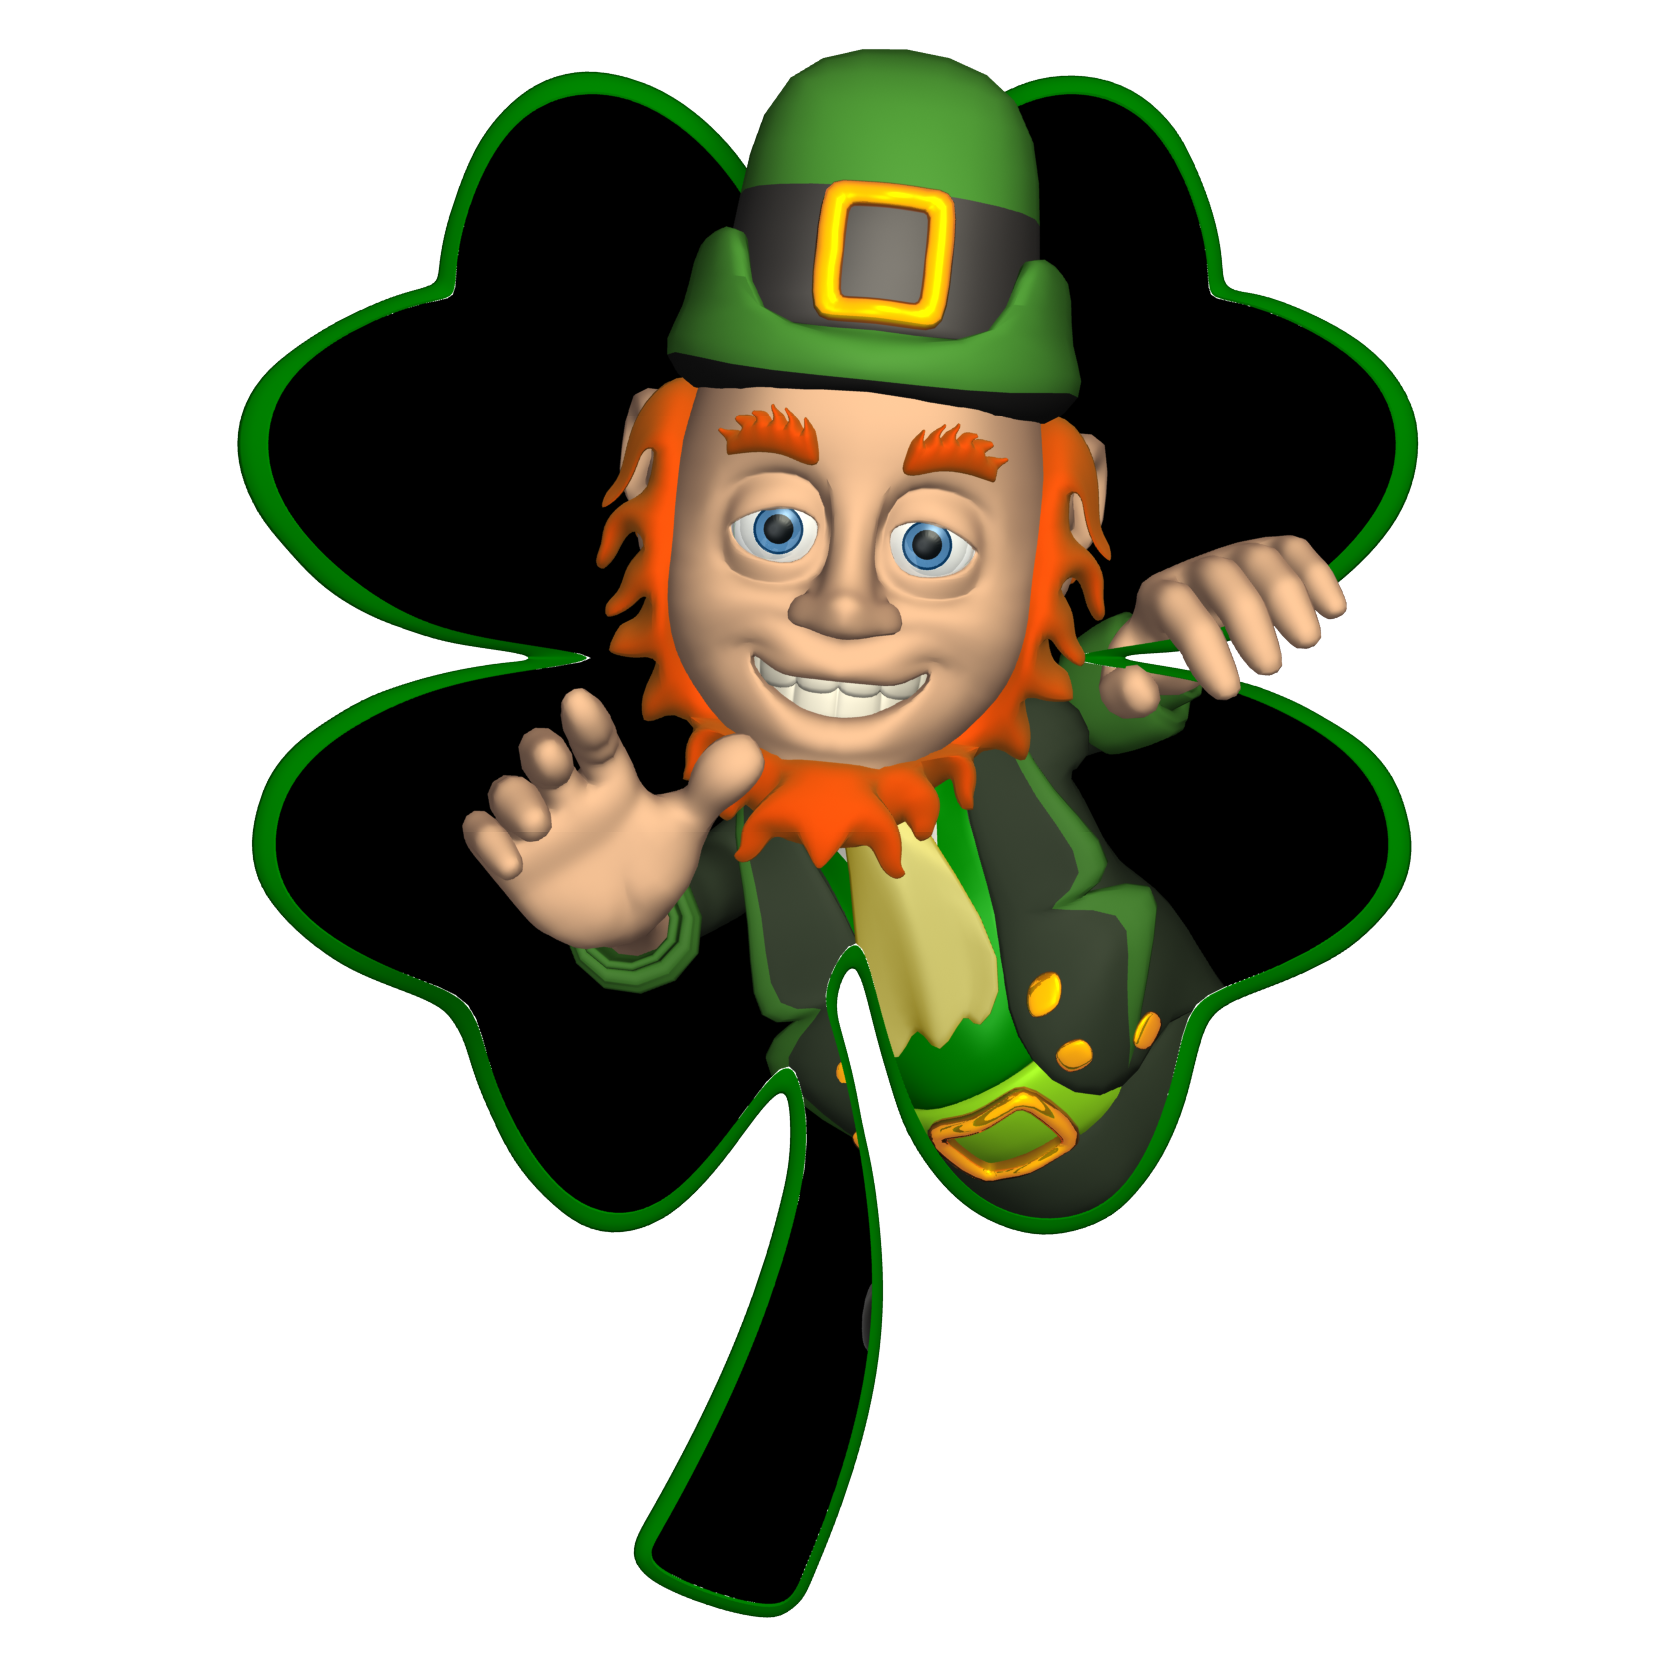 Leprechaun Tattoos, Designs And Ideas : Page 5 - Girl Leprechaun PNG